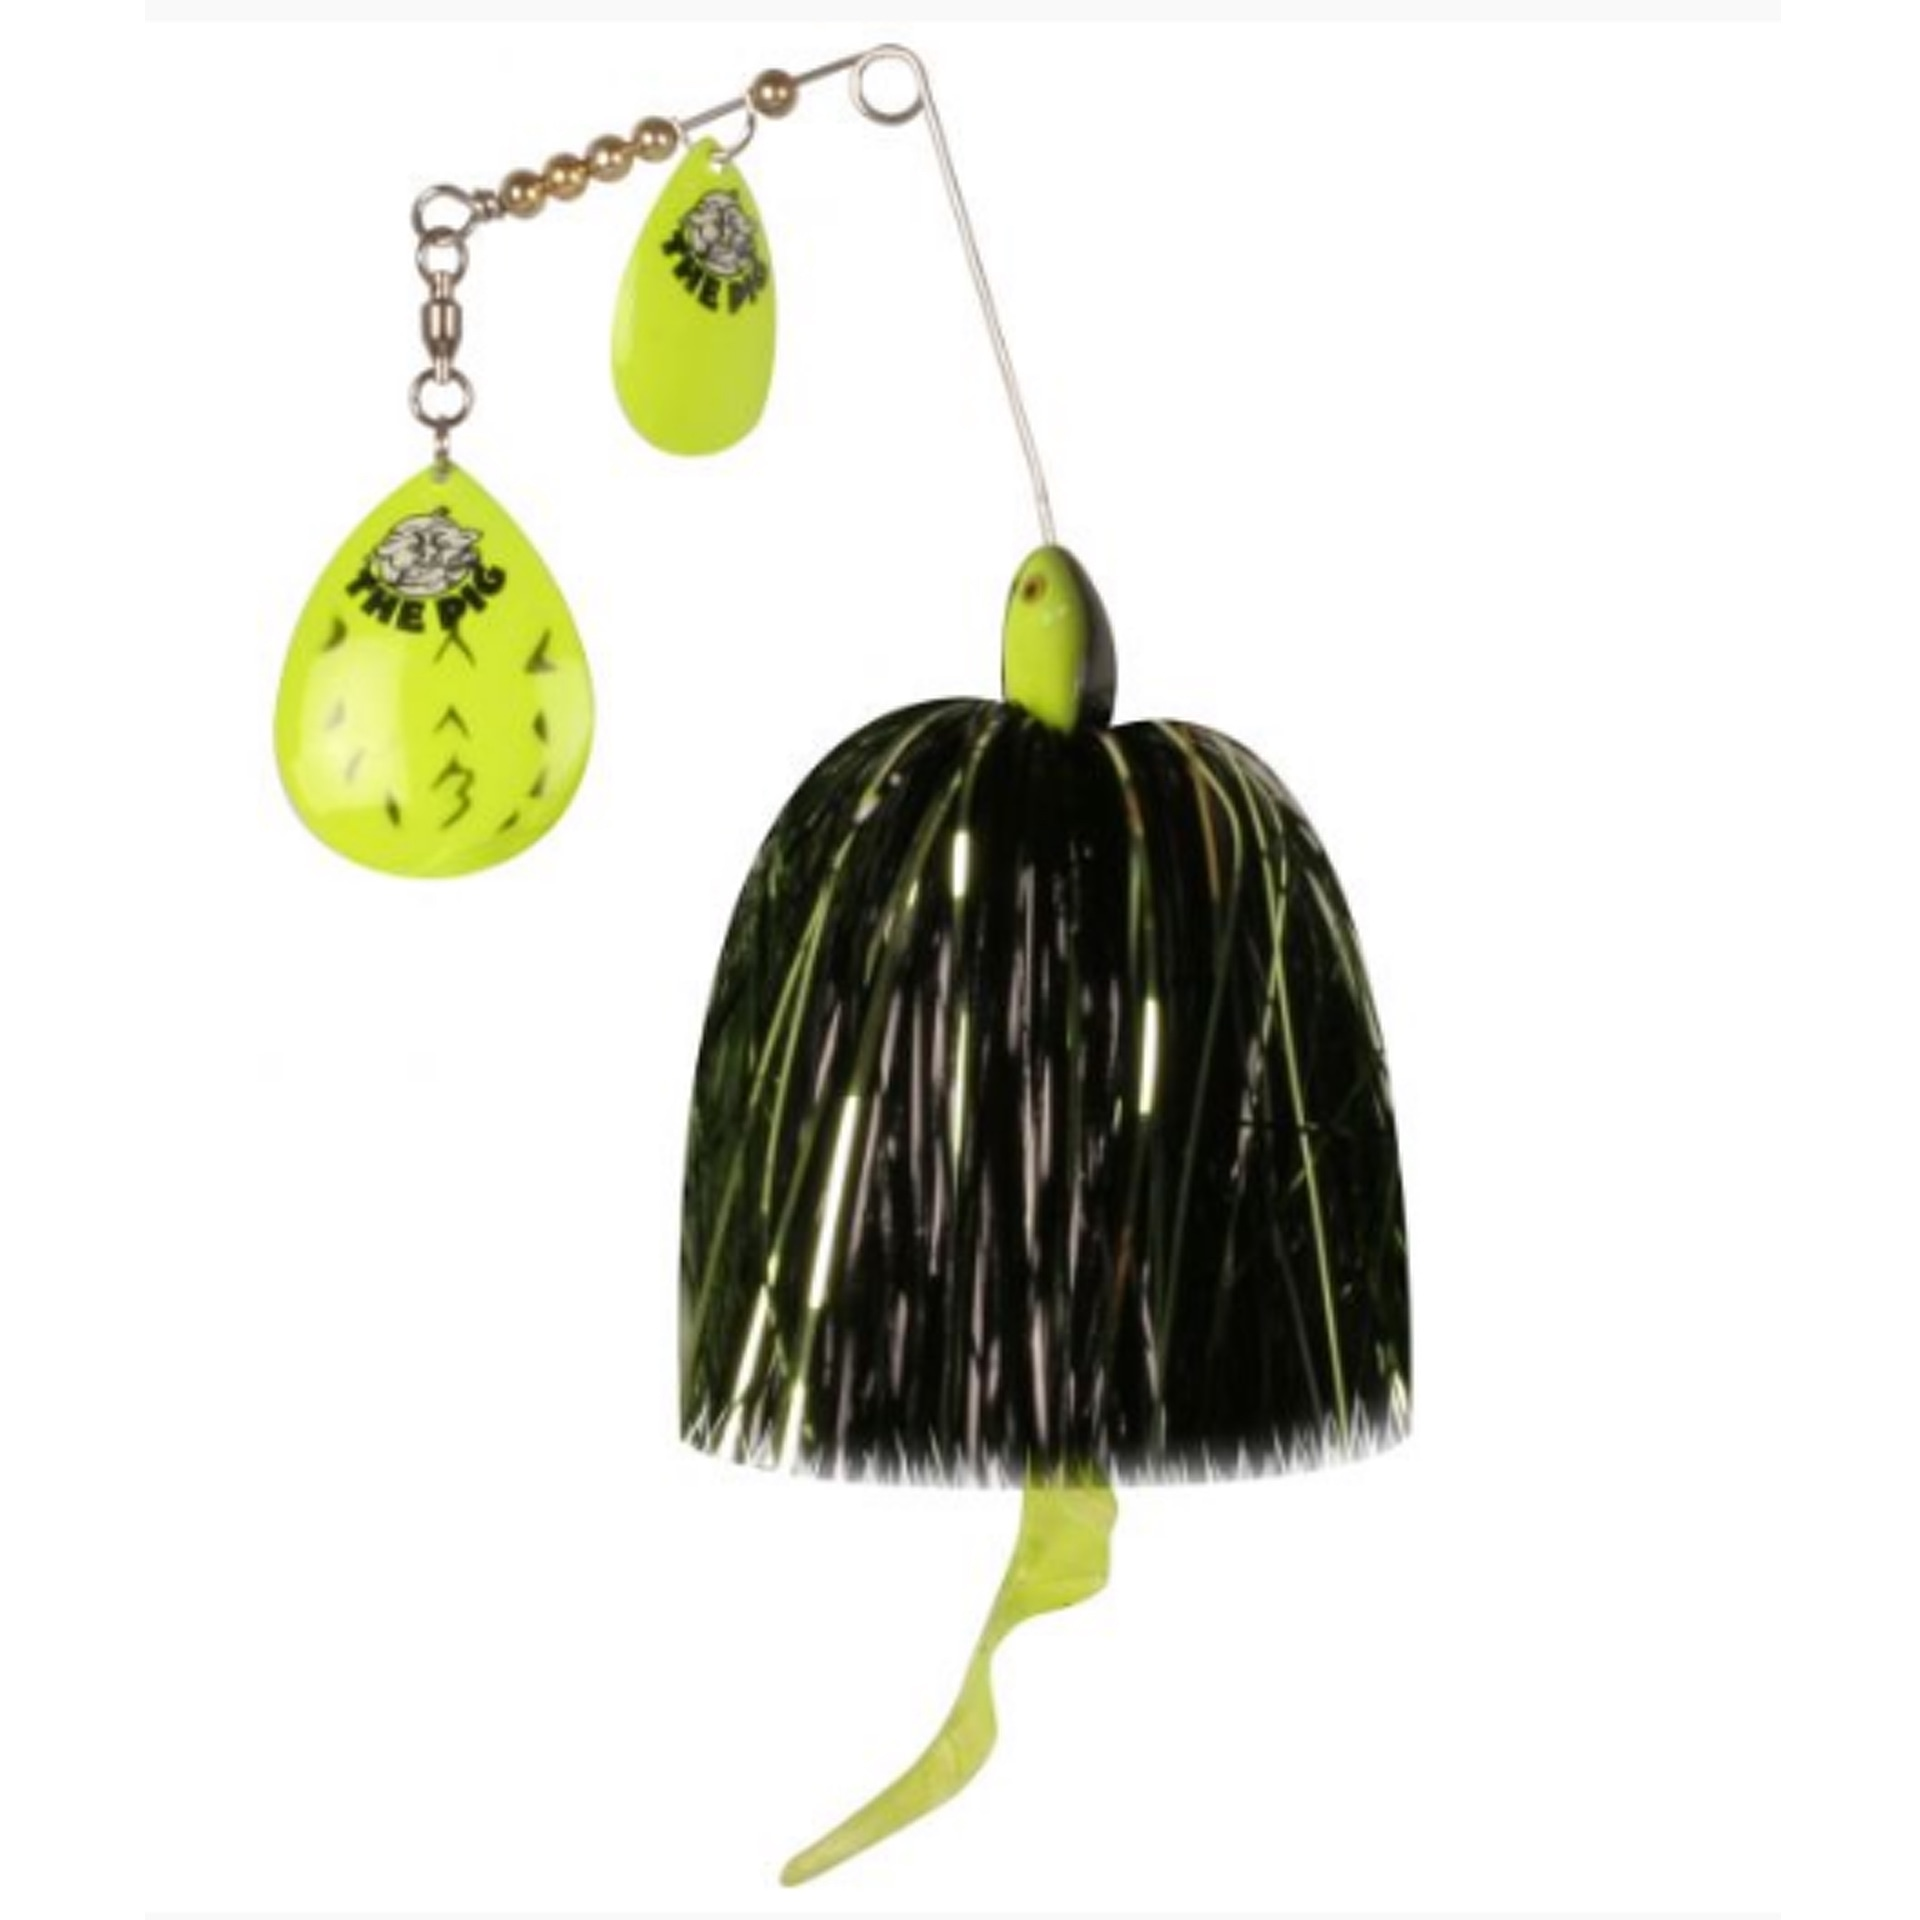 CWC Pig Spinnerbait Fluo Chart Black Dot - Green/Black/Silver